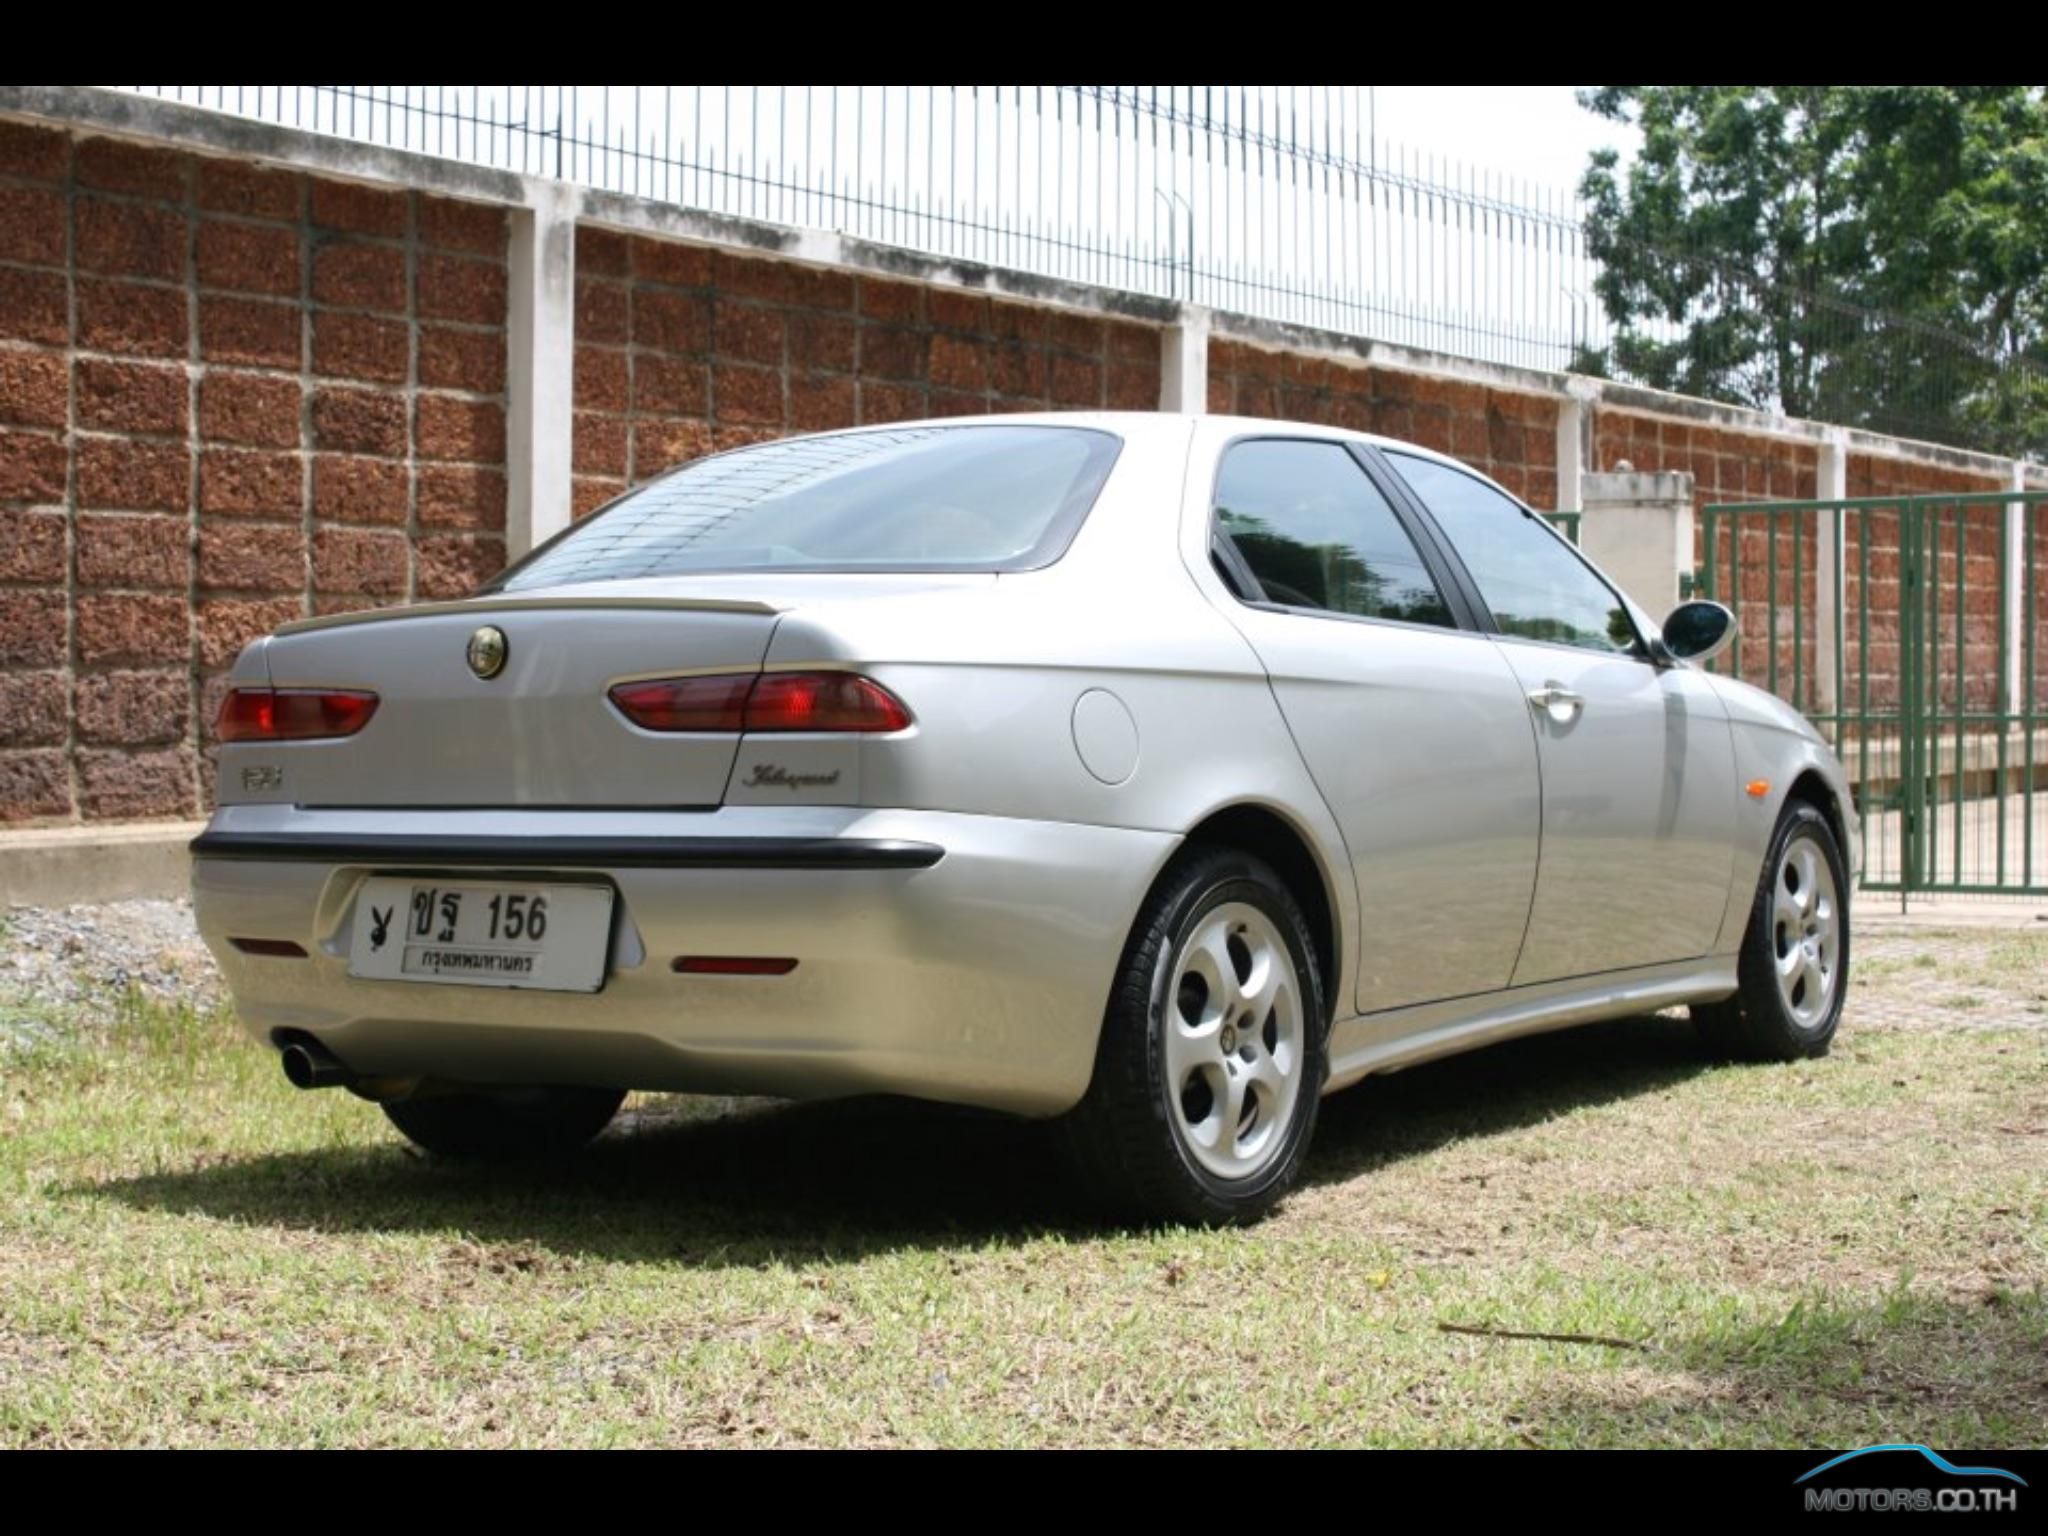 New, Used & Secondhand Cars ALFA ROMEO 156 (1999)